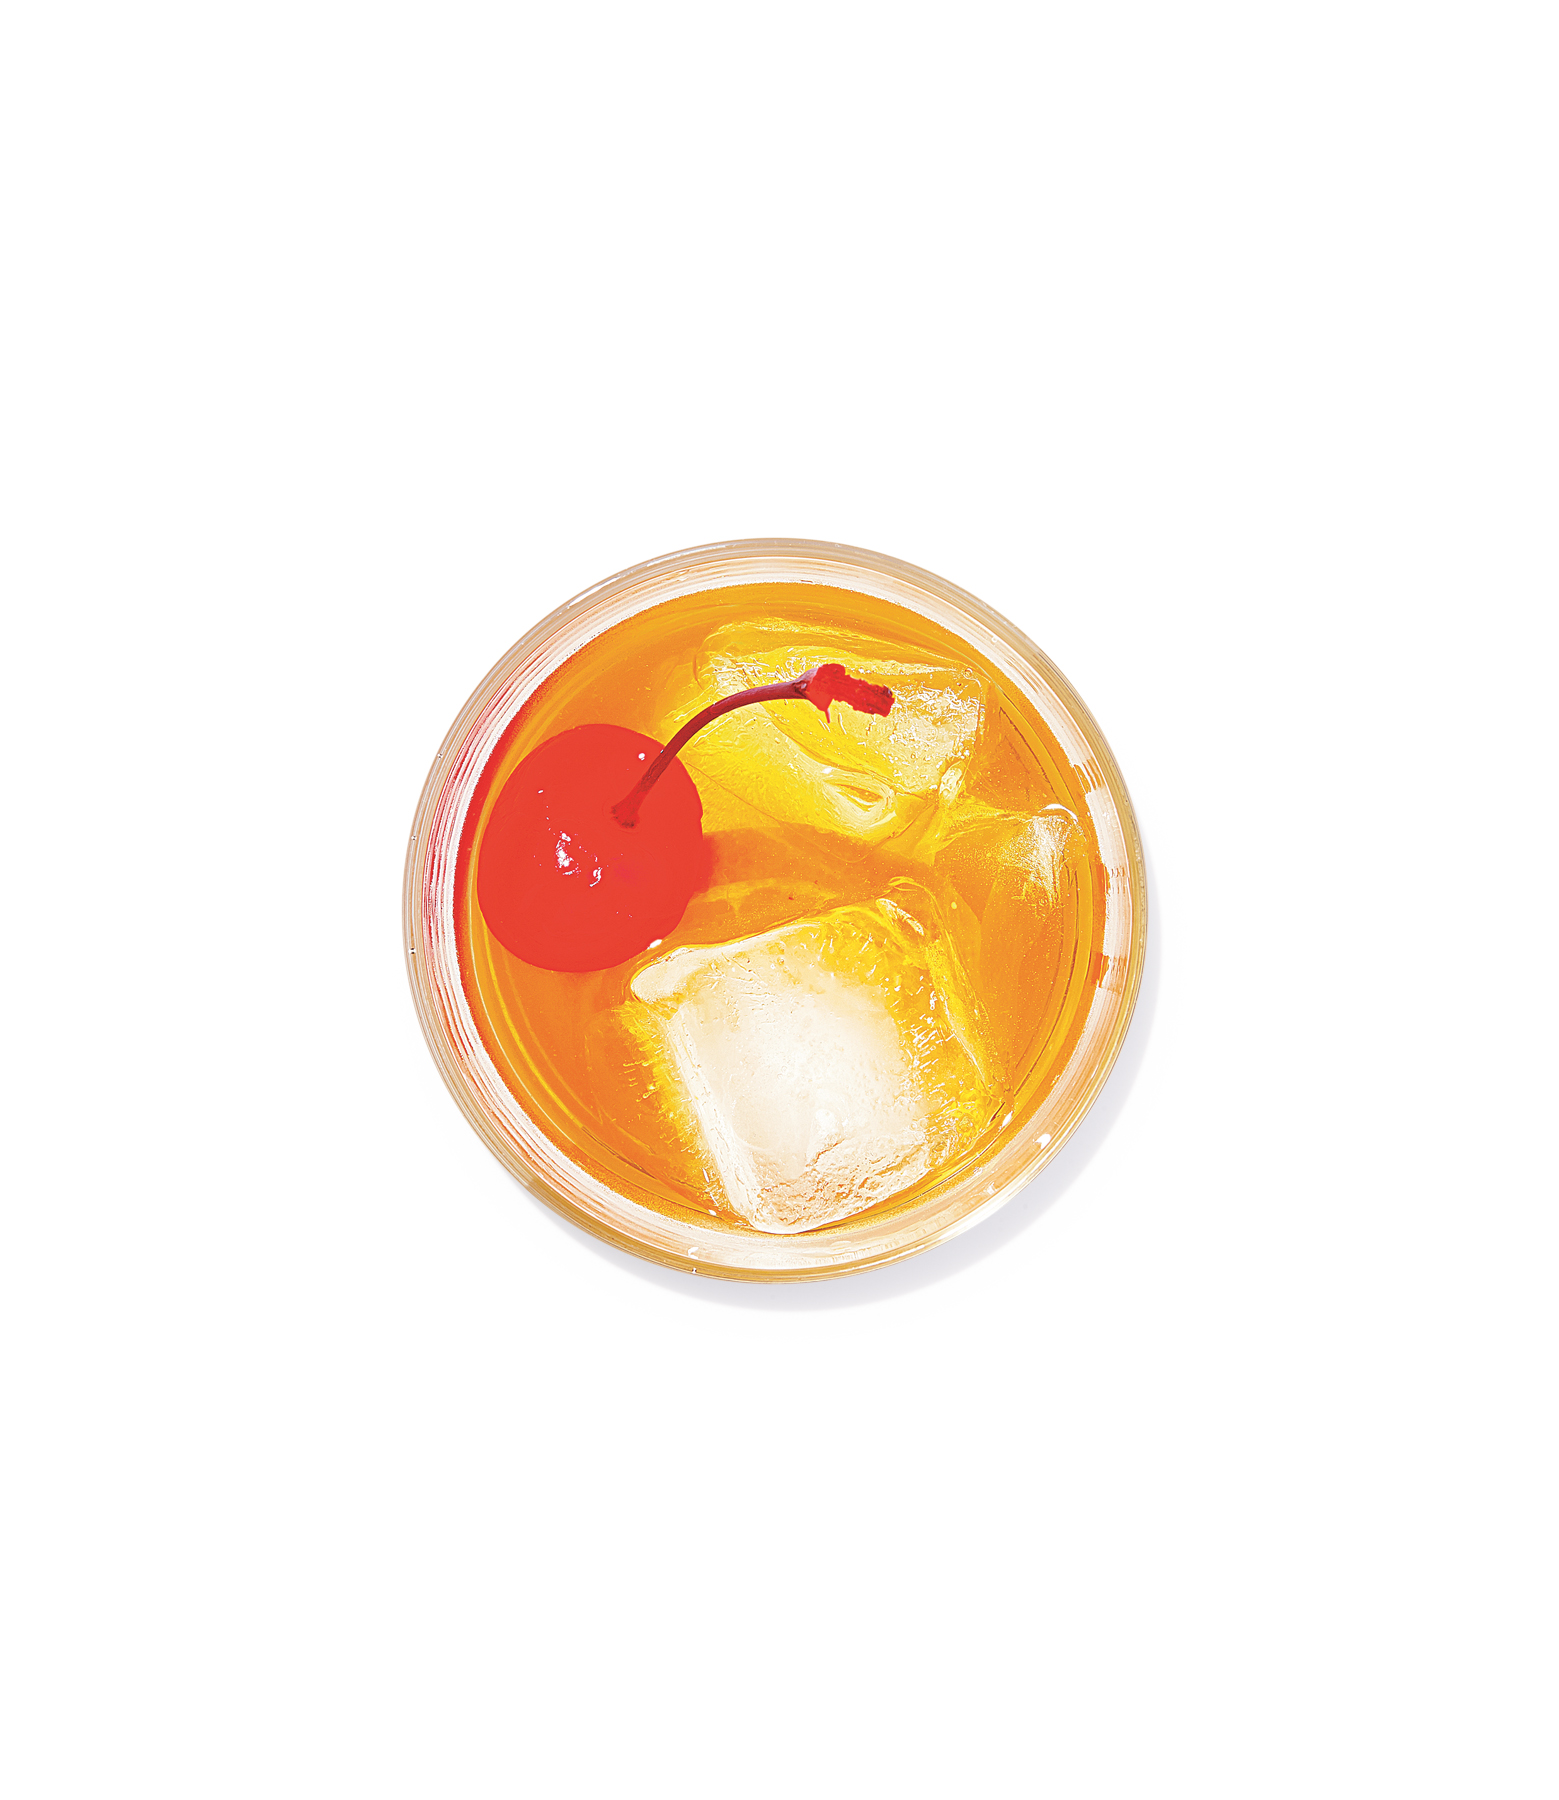 Clementine and Ginger Old-Fashioned